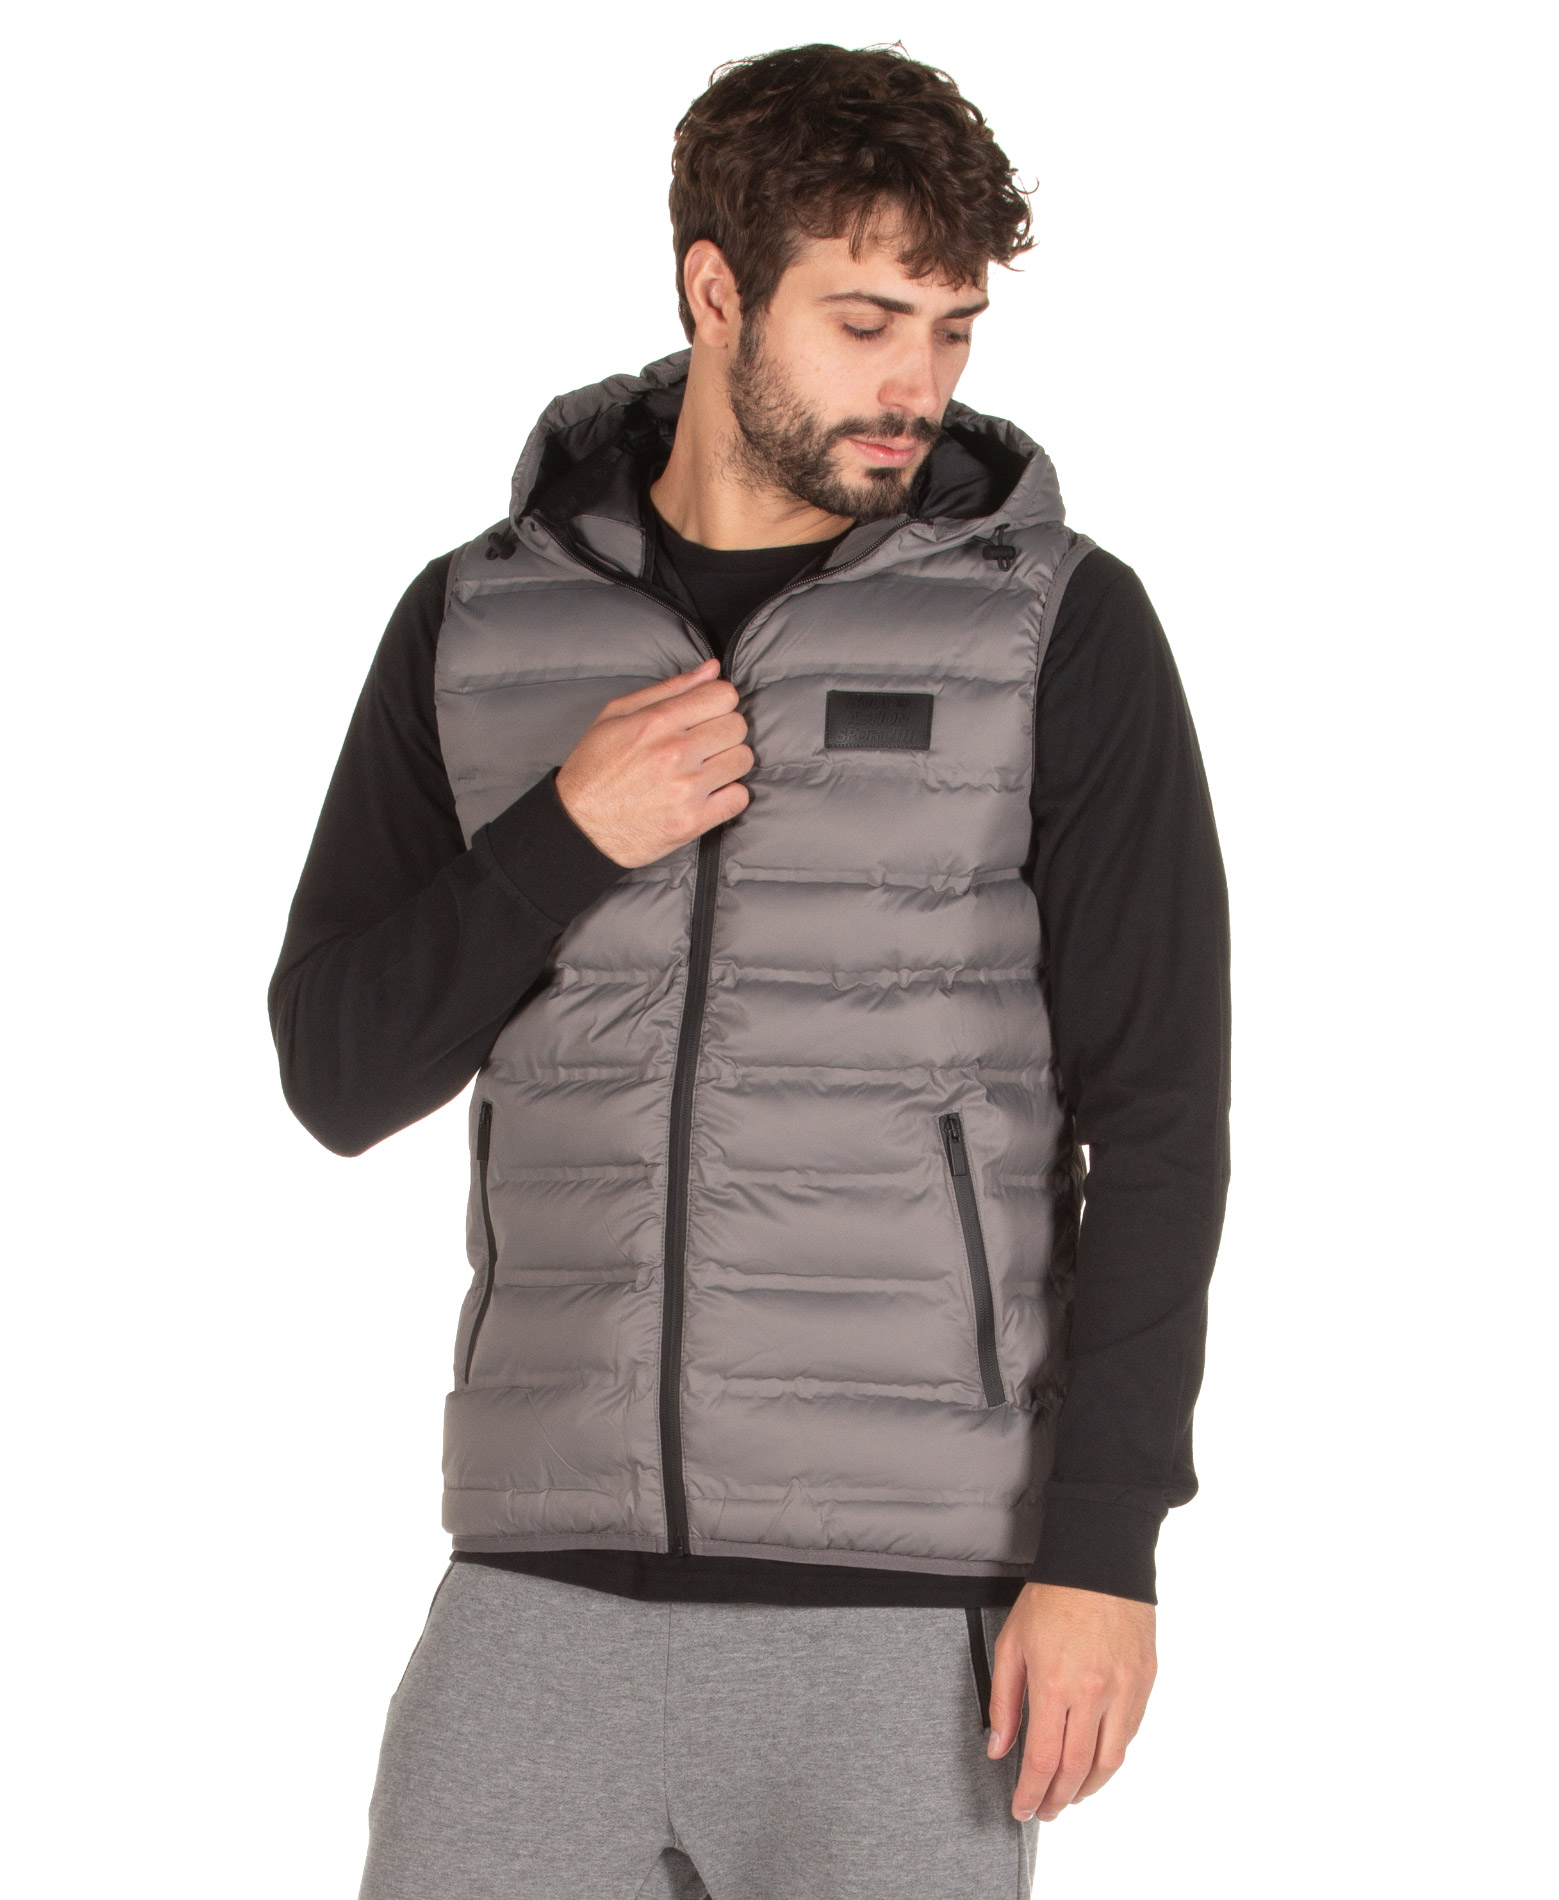 BODY ACTION ZIP-THROUGH QUILTED VEST WITH HOOD 073925-01-03 Γκρί